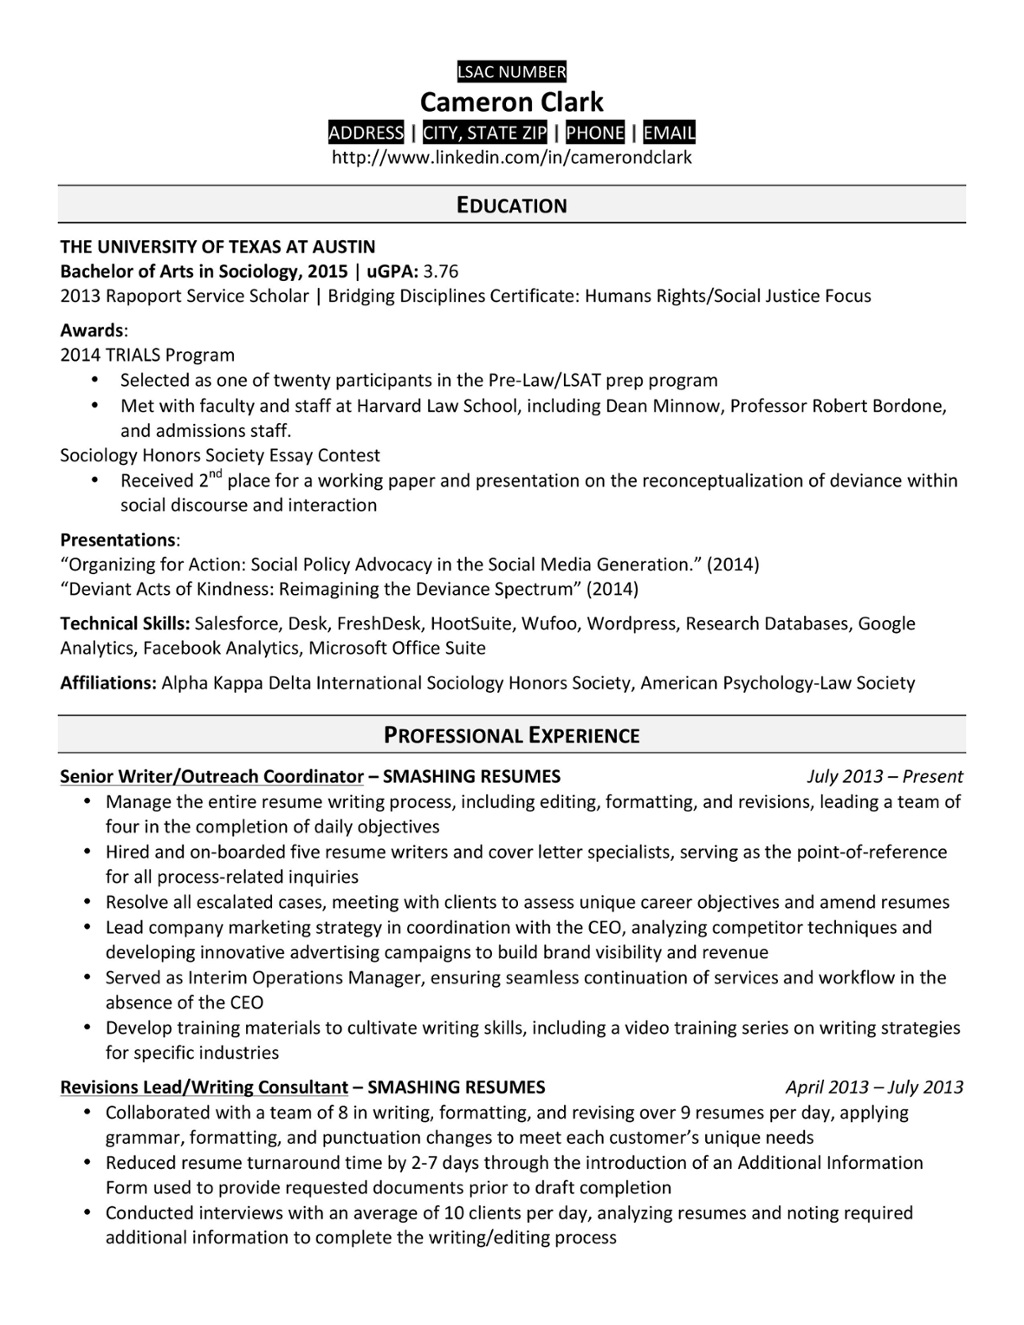 a law school resume that made the cut top law schools us news - Law School Application Resume